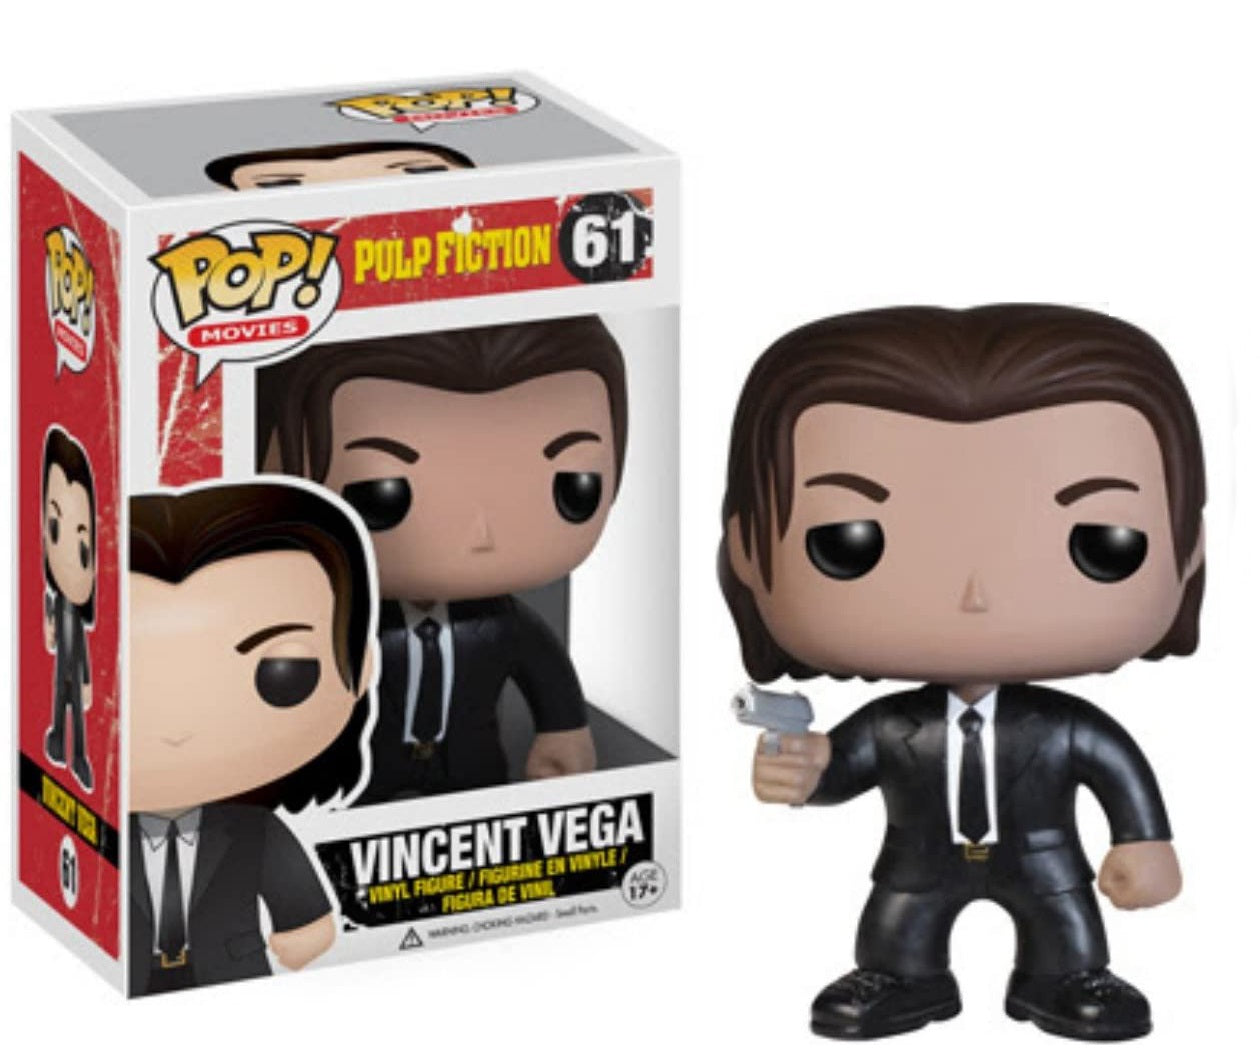 Funko Pop Pulp Fiction Vincent Vega with Disney Japan Sticker and upc on the bottom of packaging